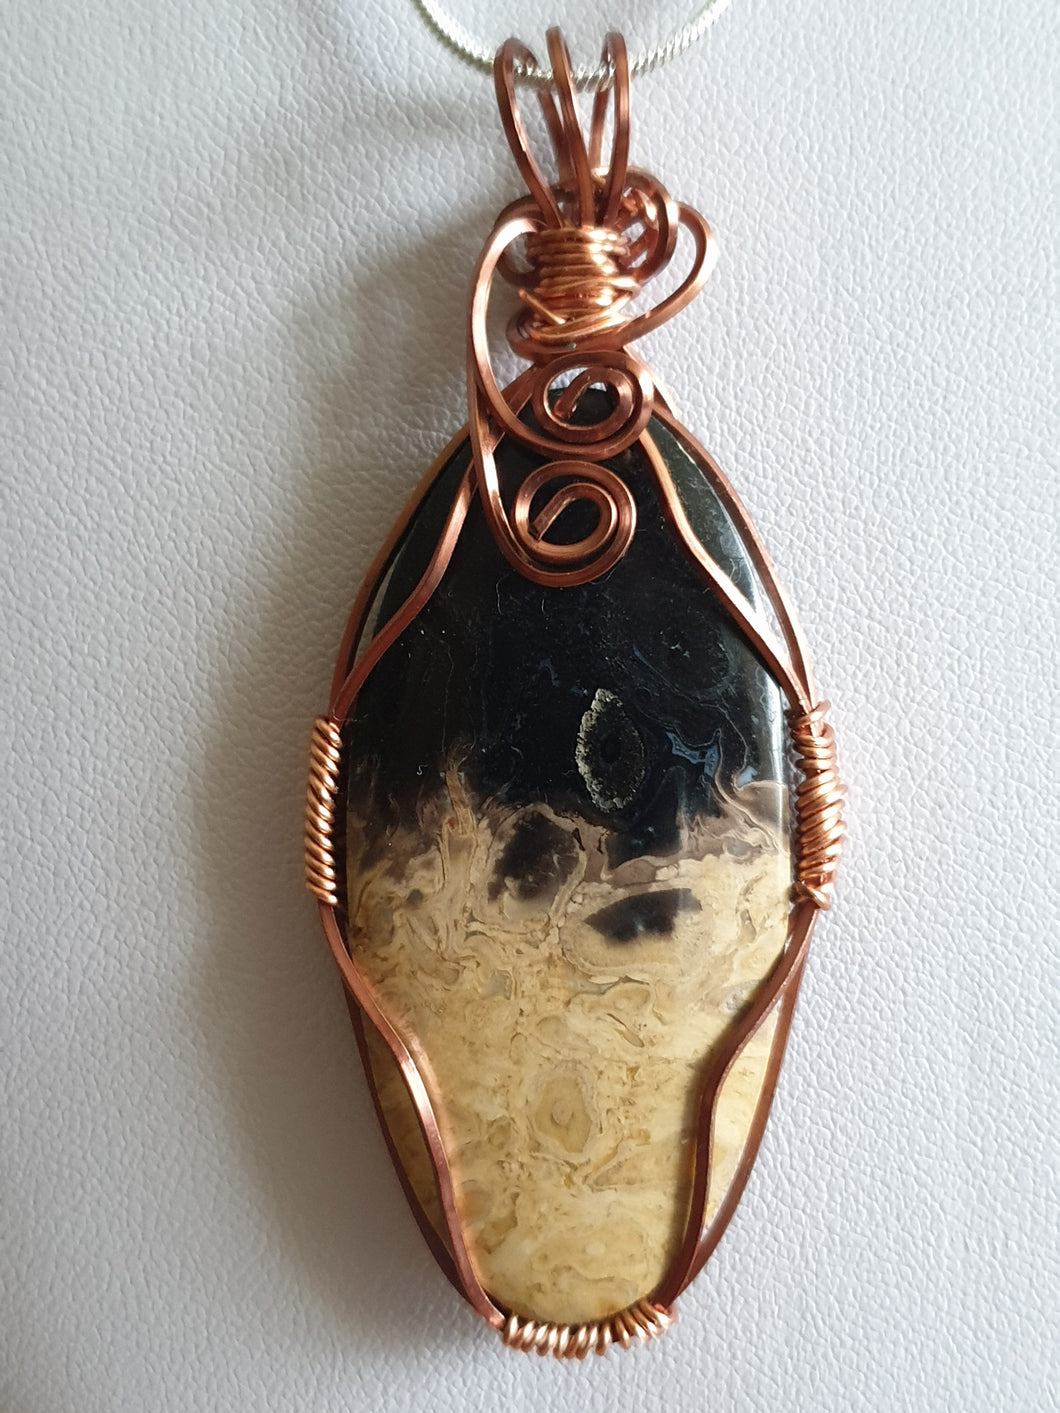 Palm Root cabochon pendant wrapped in copper wire (nickel free - hypoallergenic)